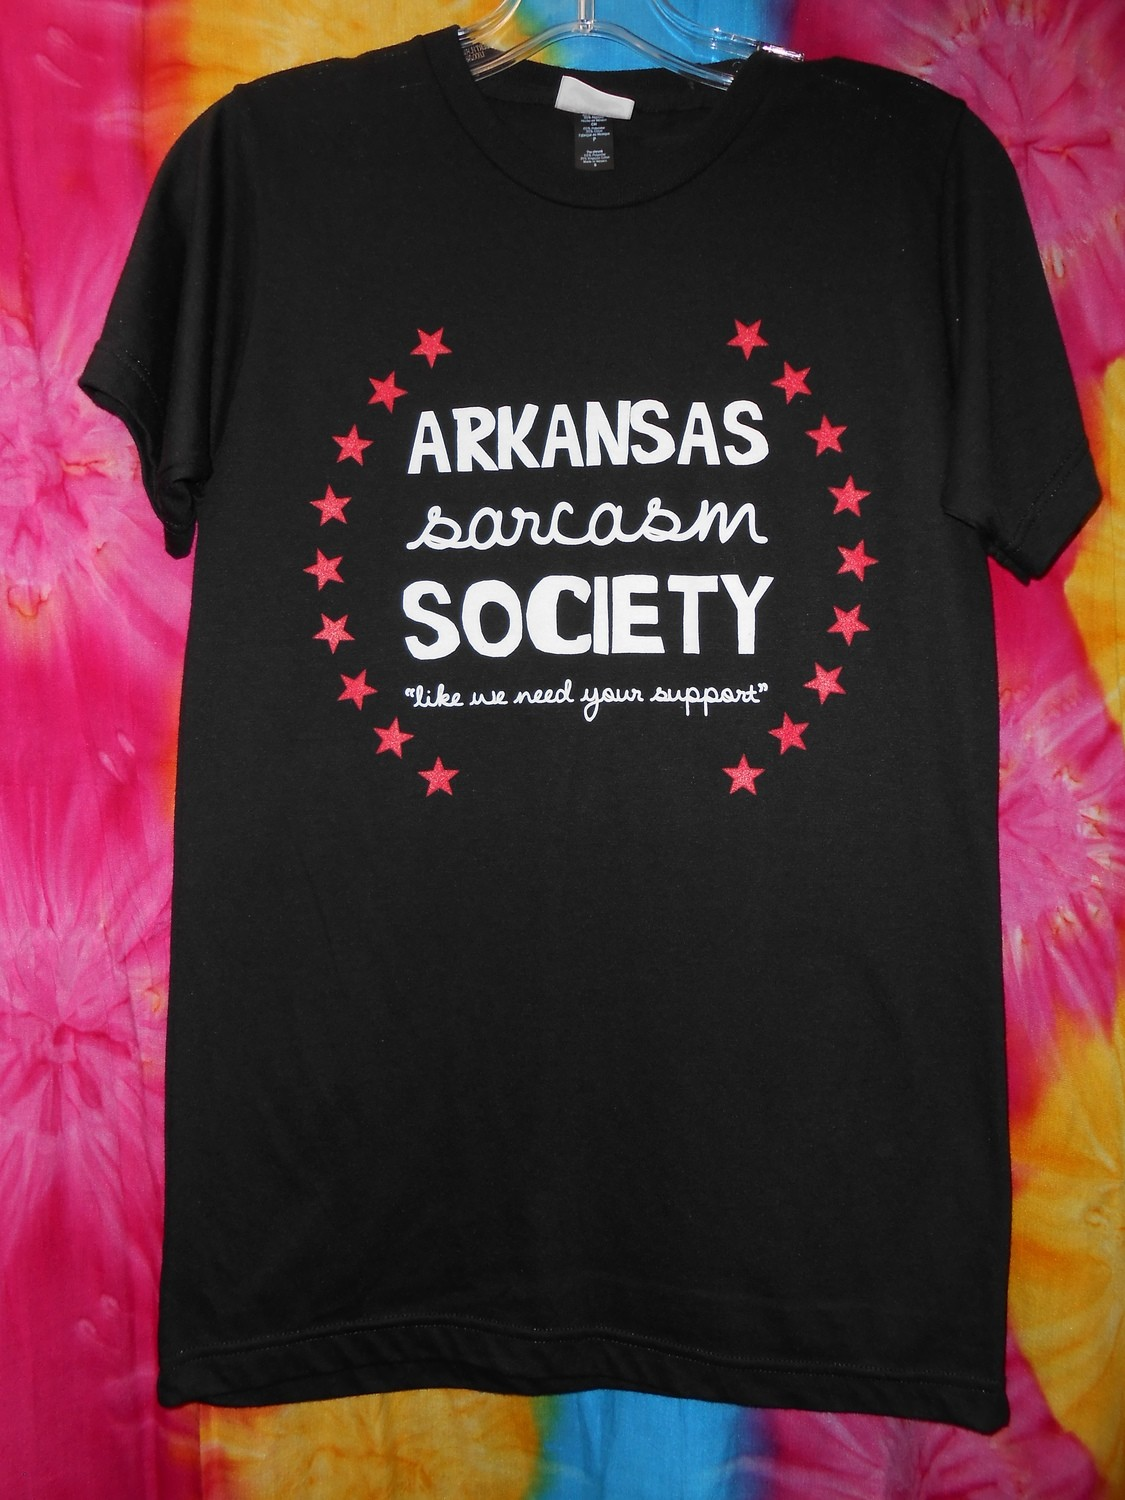 Arkansas Sarcasm Society T-Shirt